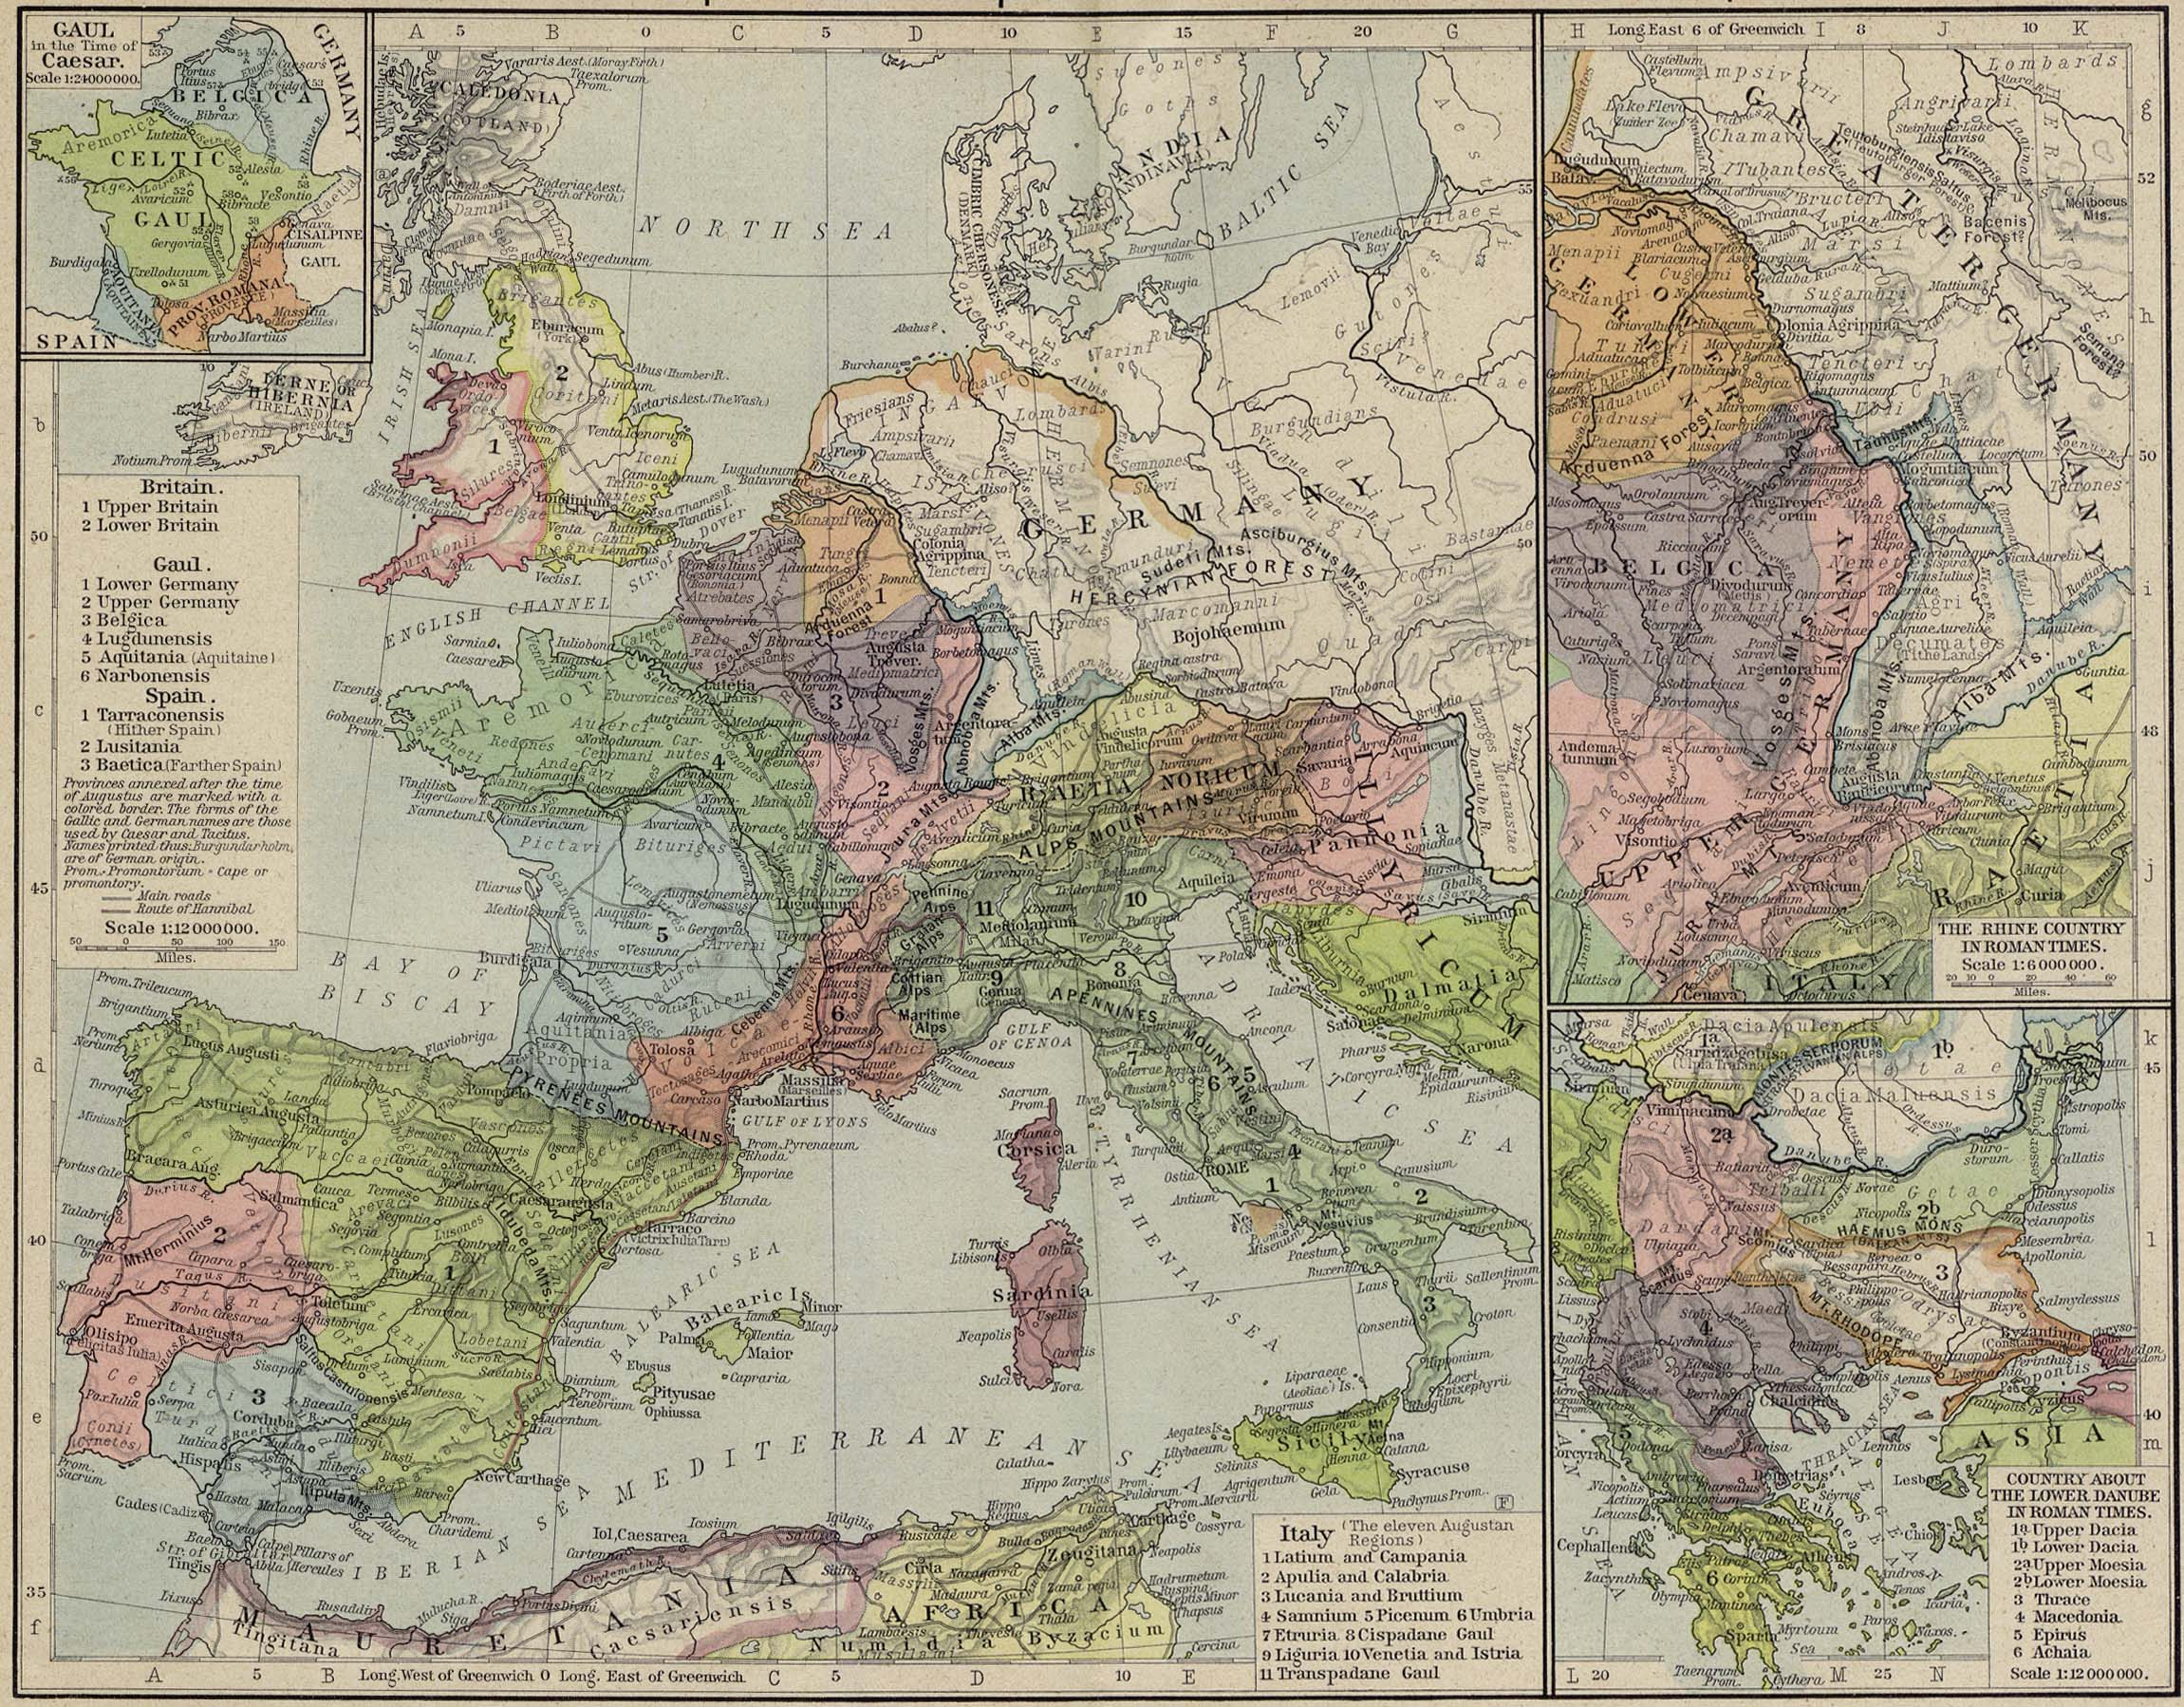 Bible Maps     Reference Map of the European Provinces of the Roman Empire